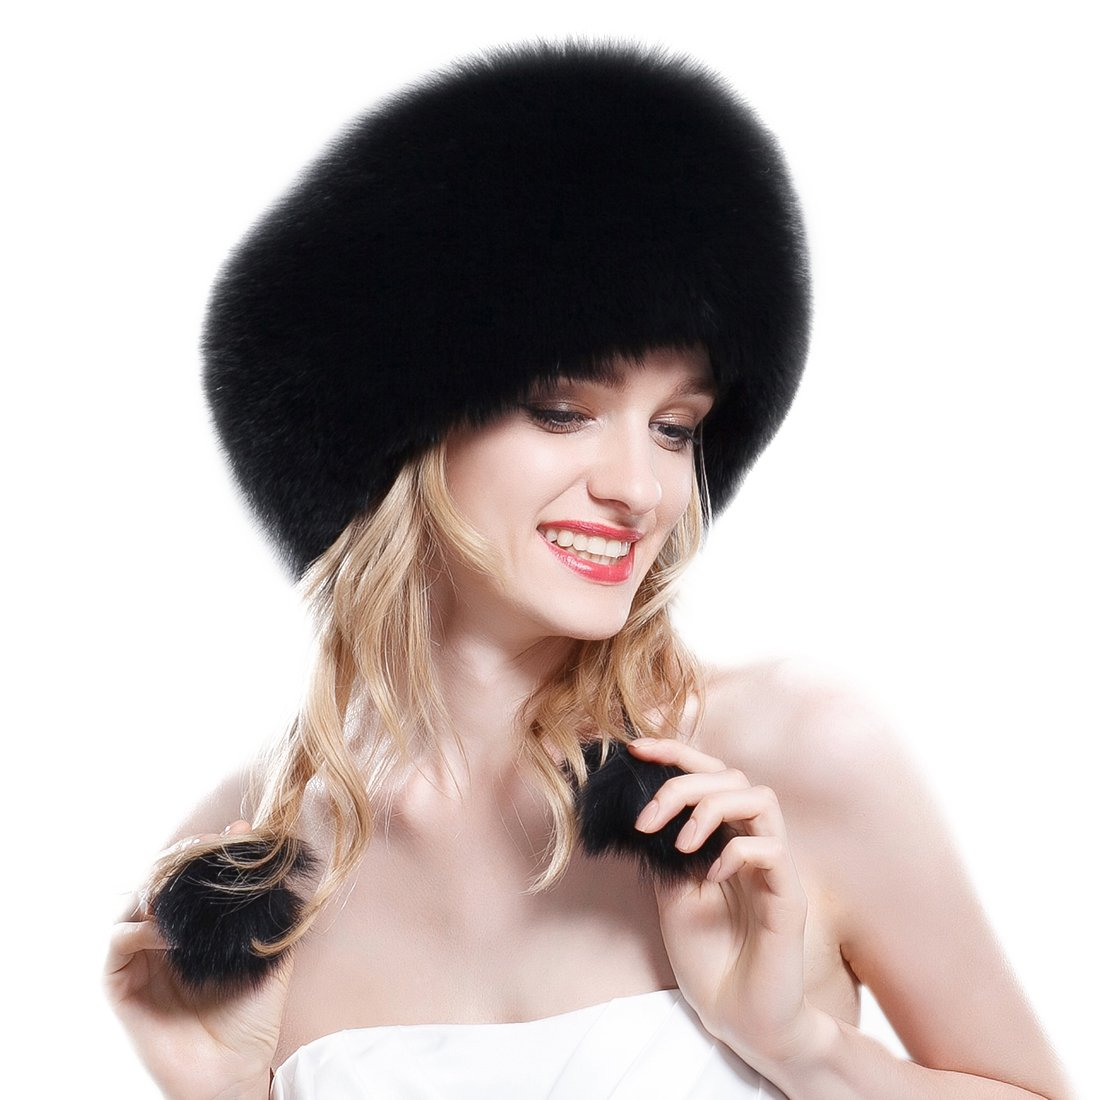 URSFUR Black Fox Fur Roller Hat with Leather Top Natural Color by URSFUR